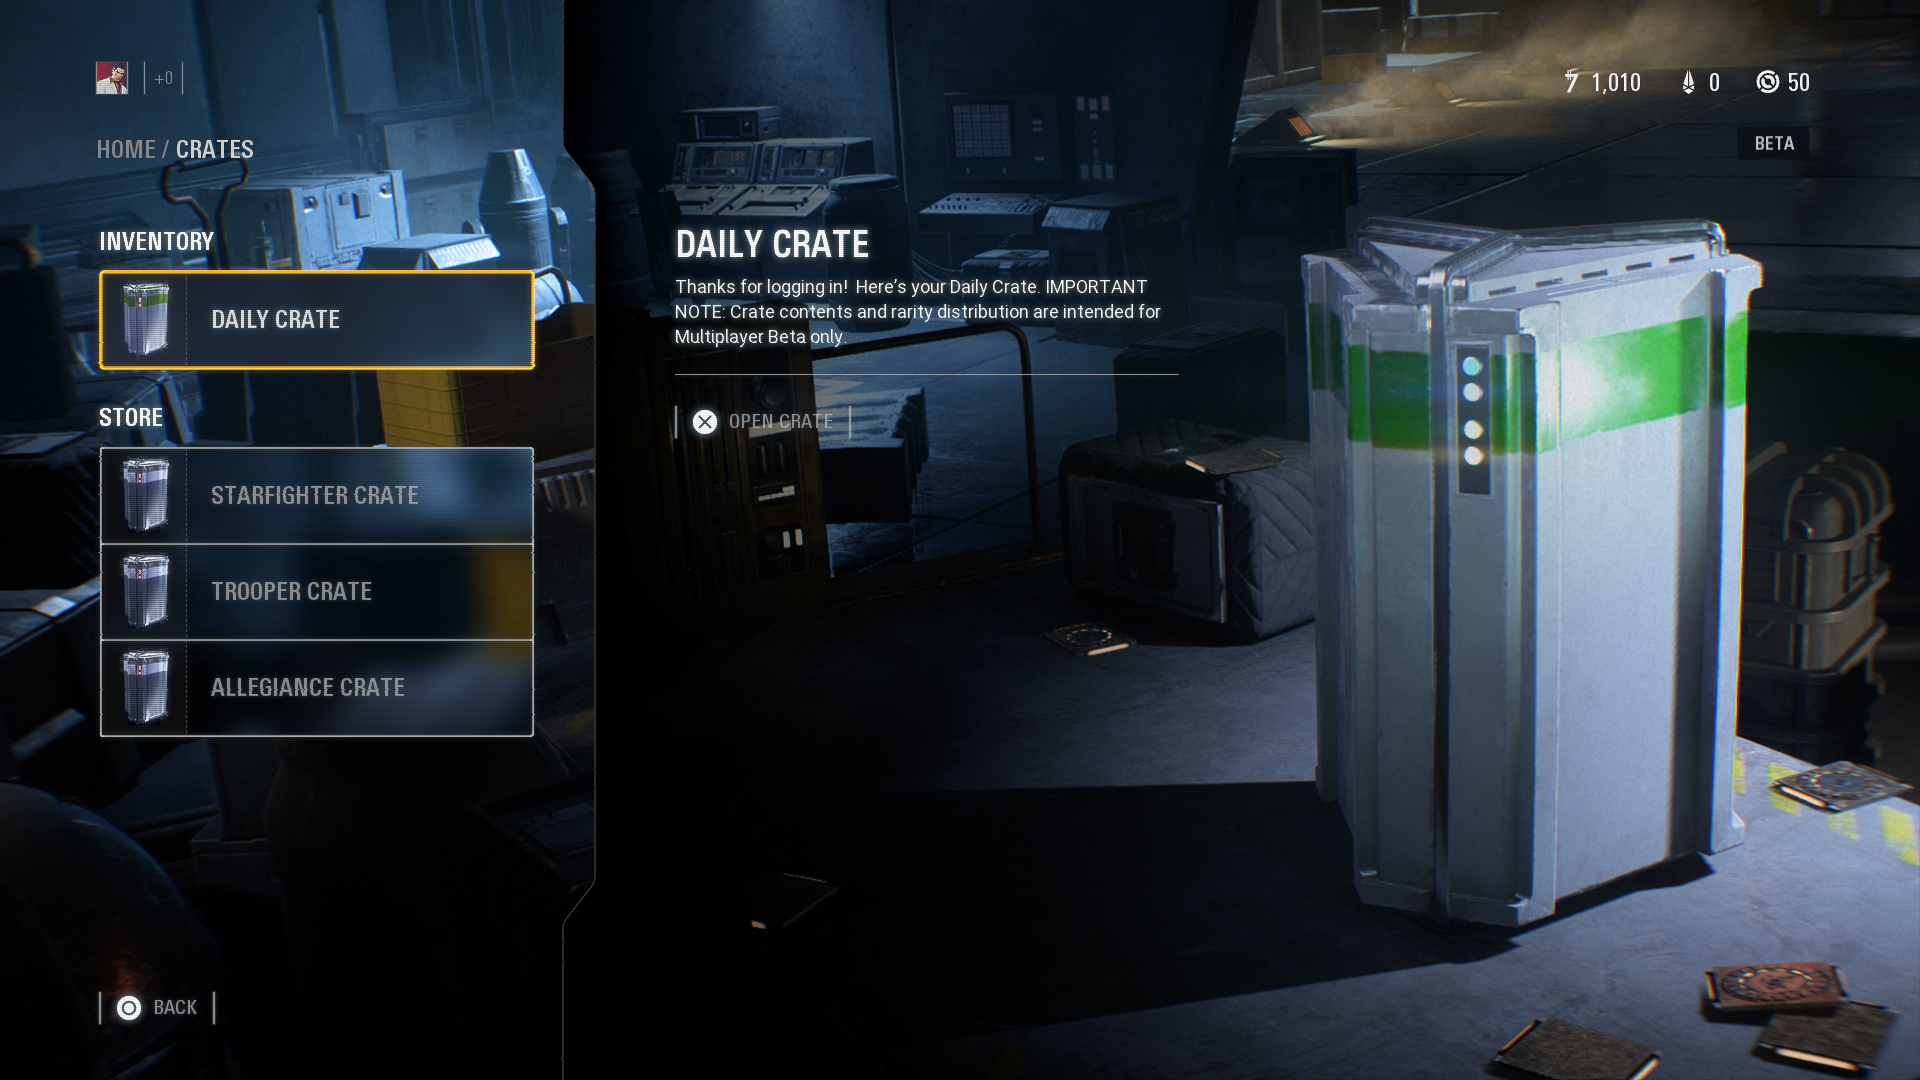 Here's How Much Star Wars Battlefront 2's Loot Crates Cost